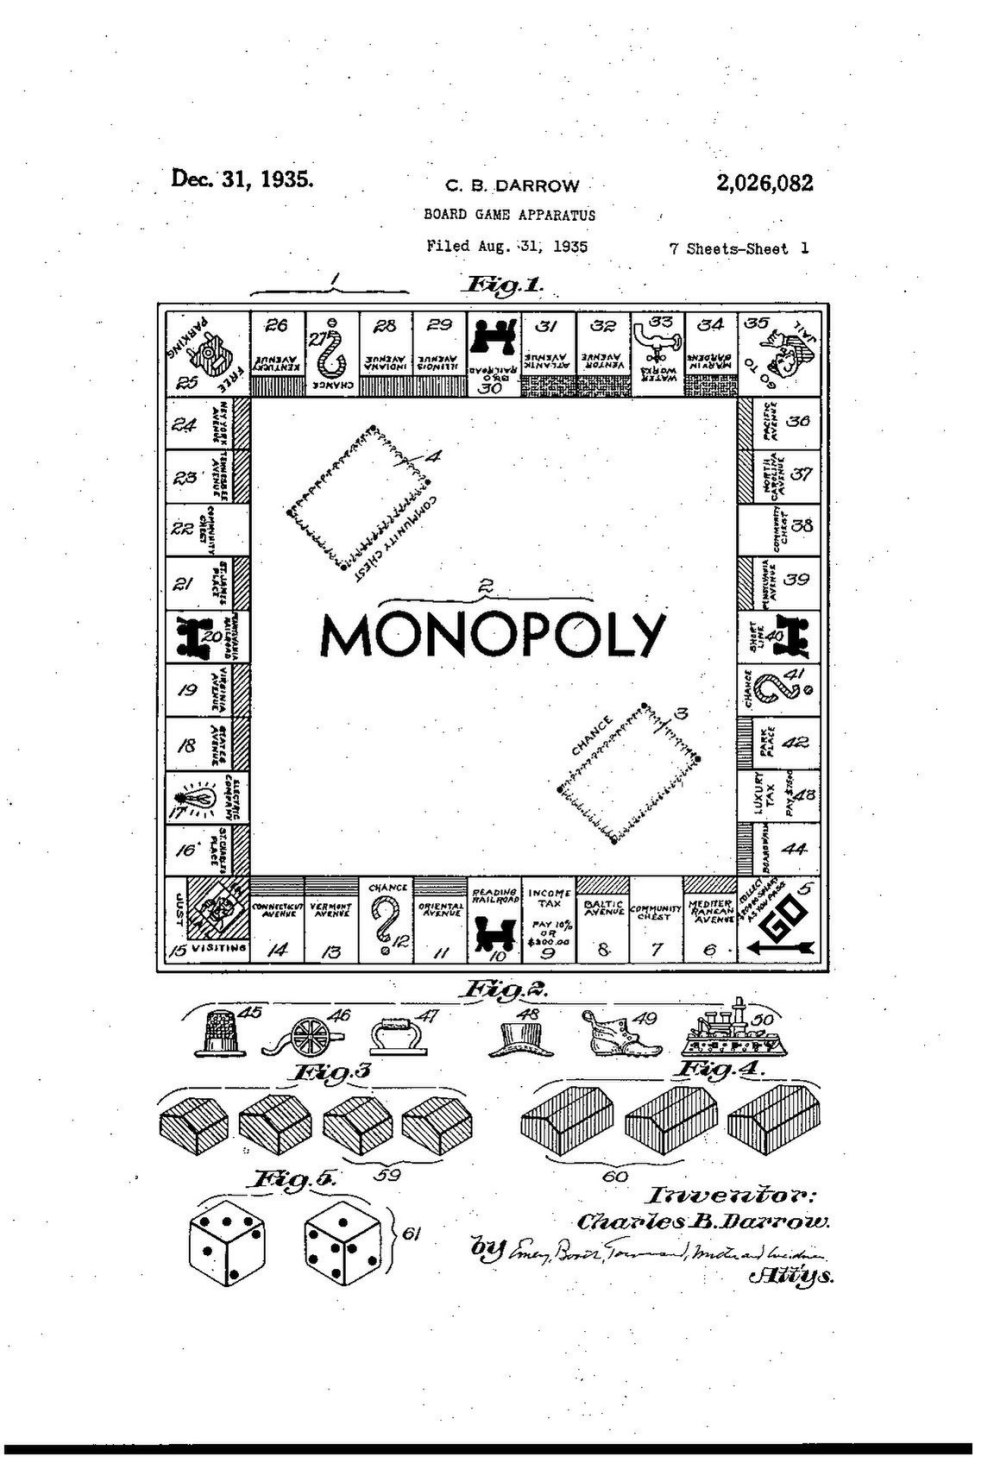 medium resolution of file monopoly board game patent us2026082 pdf